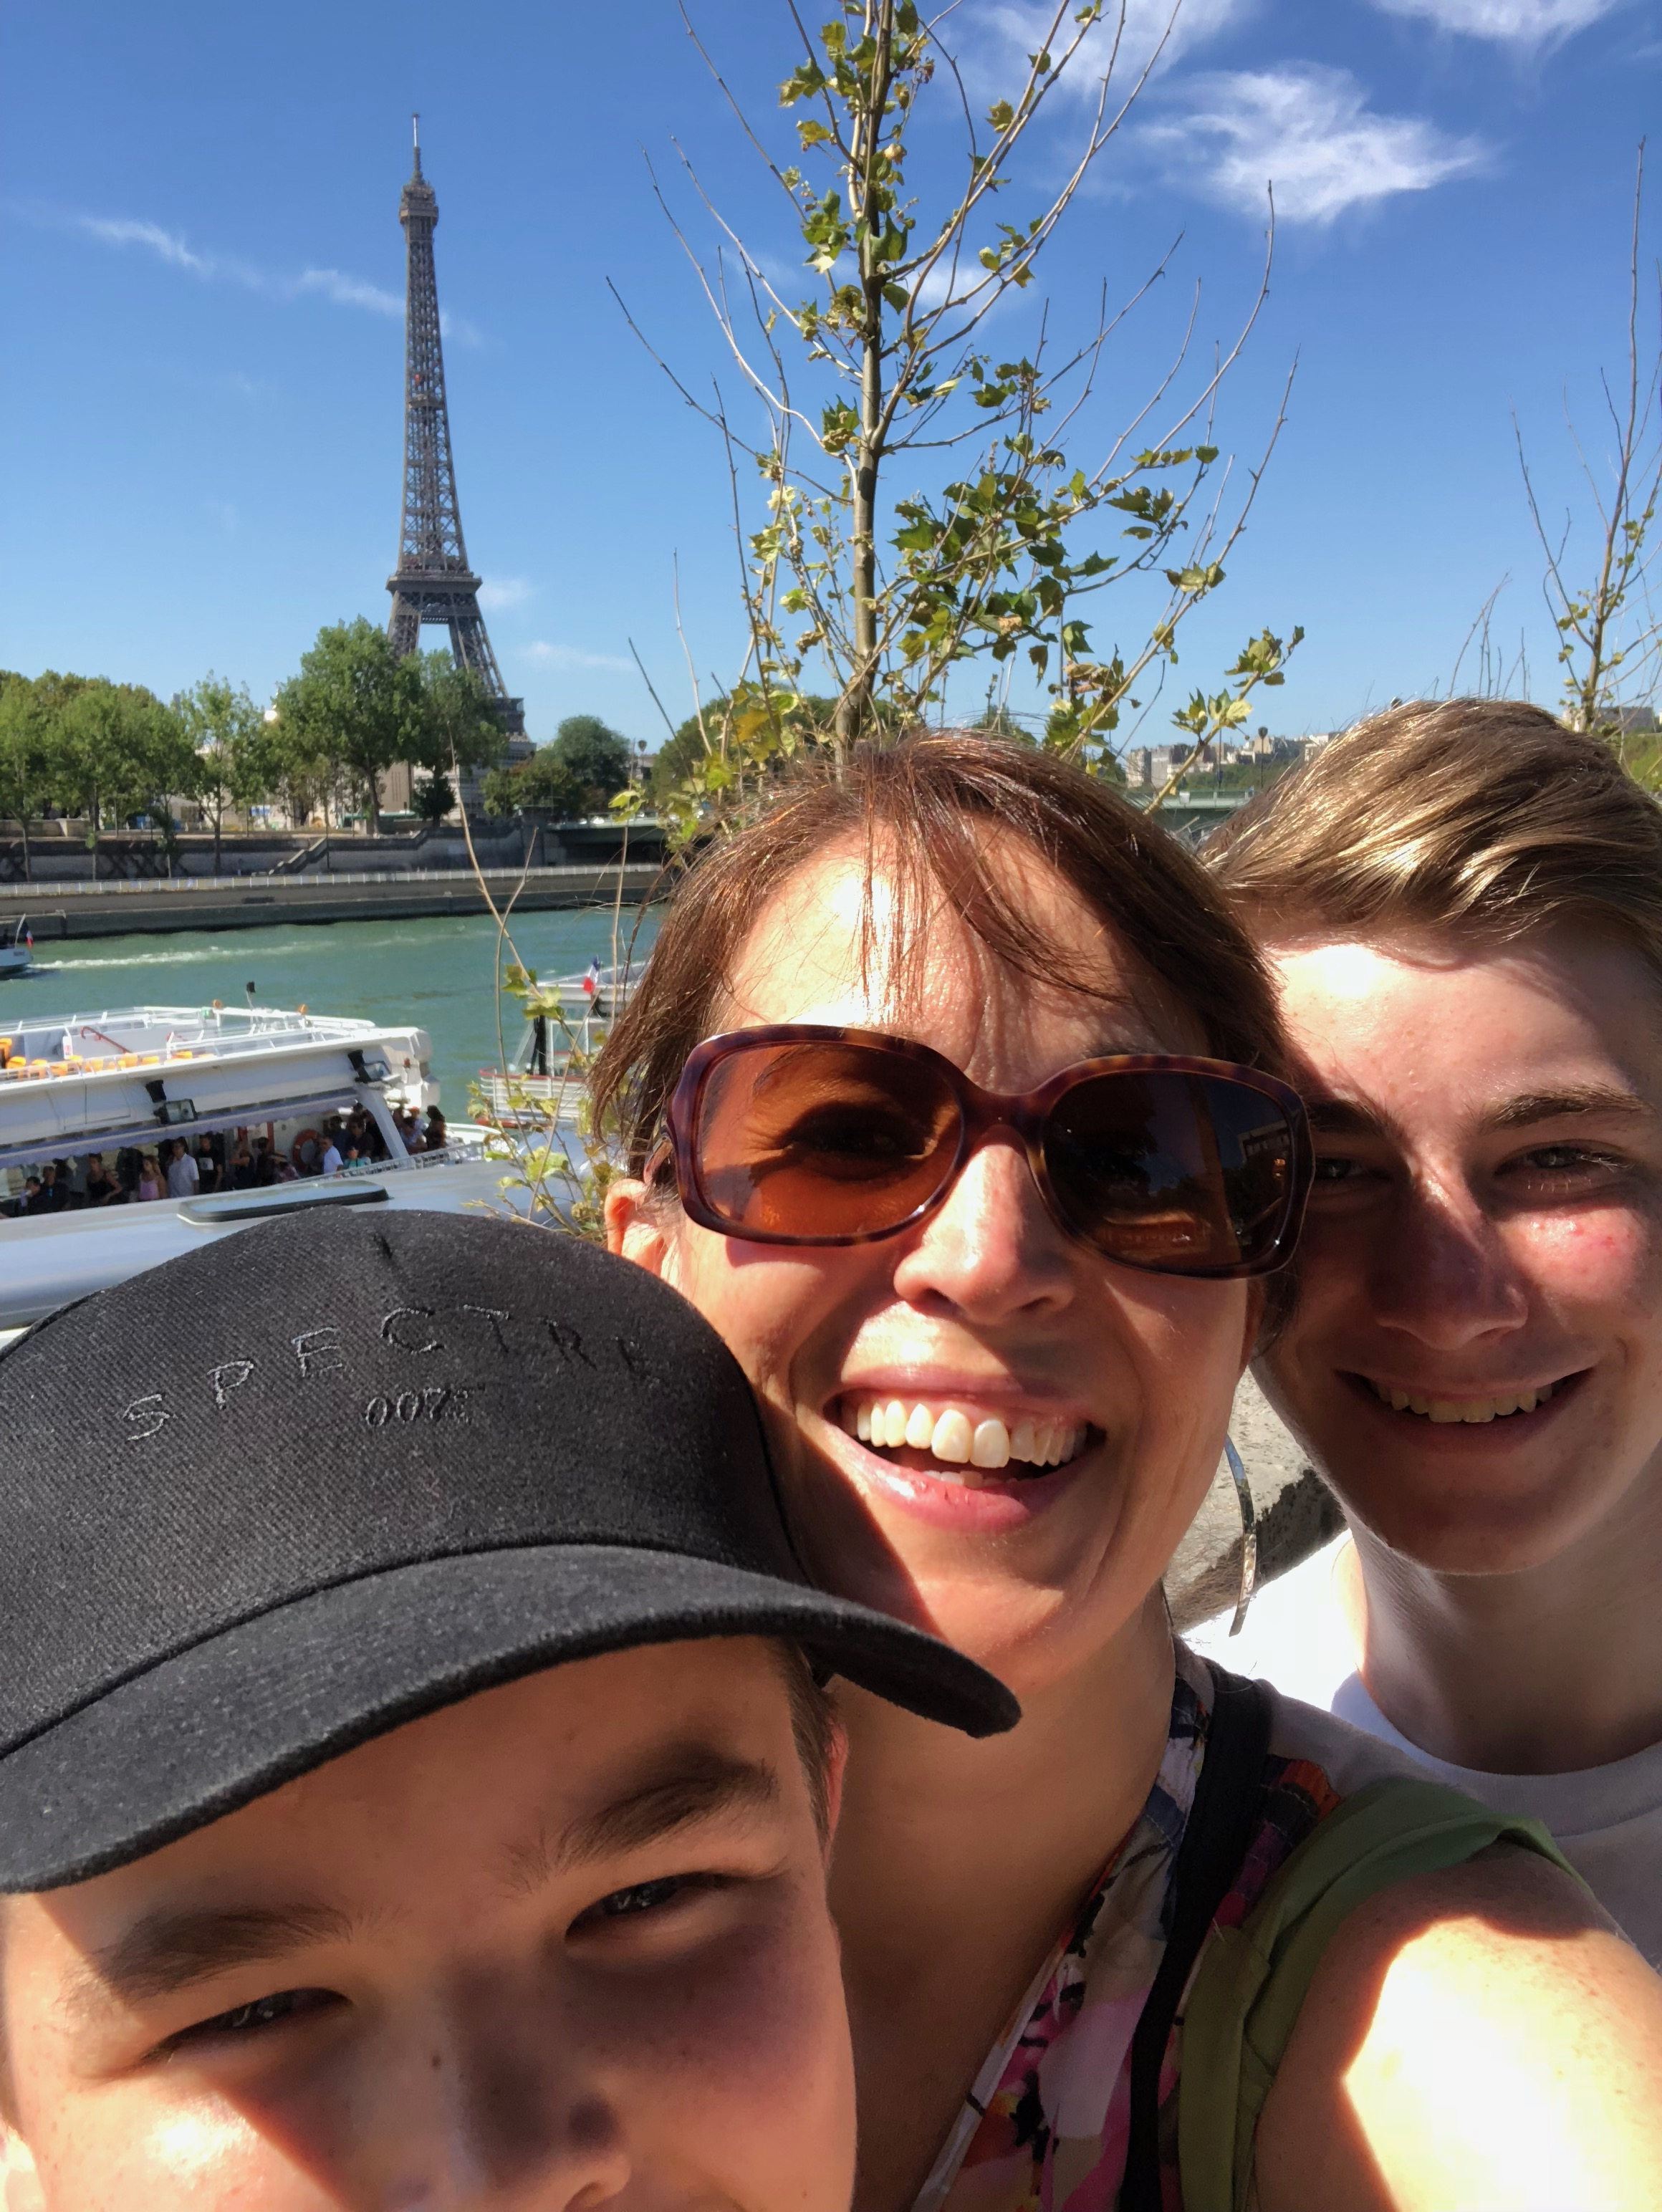 Kathy and her two sons take a group selfie with the Seine and Eiffel Tower over their shoulder